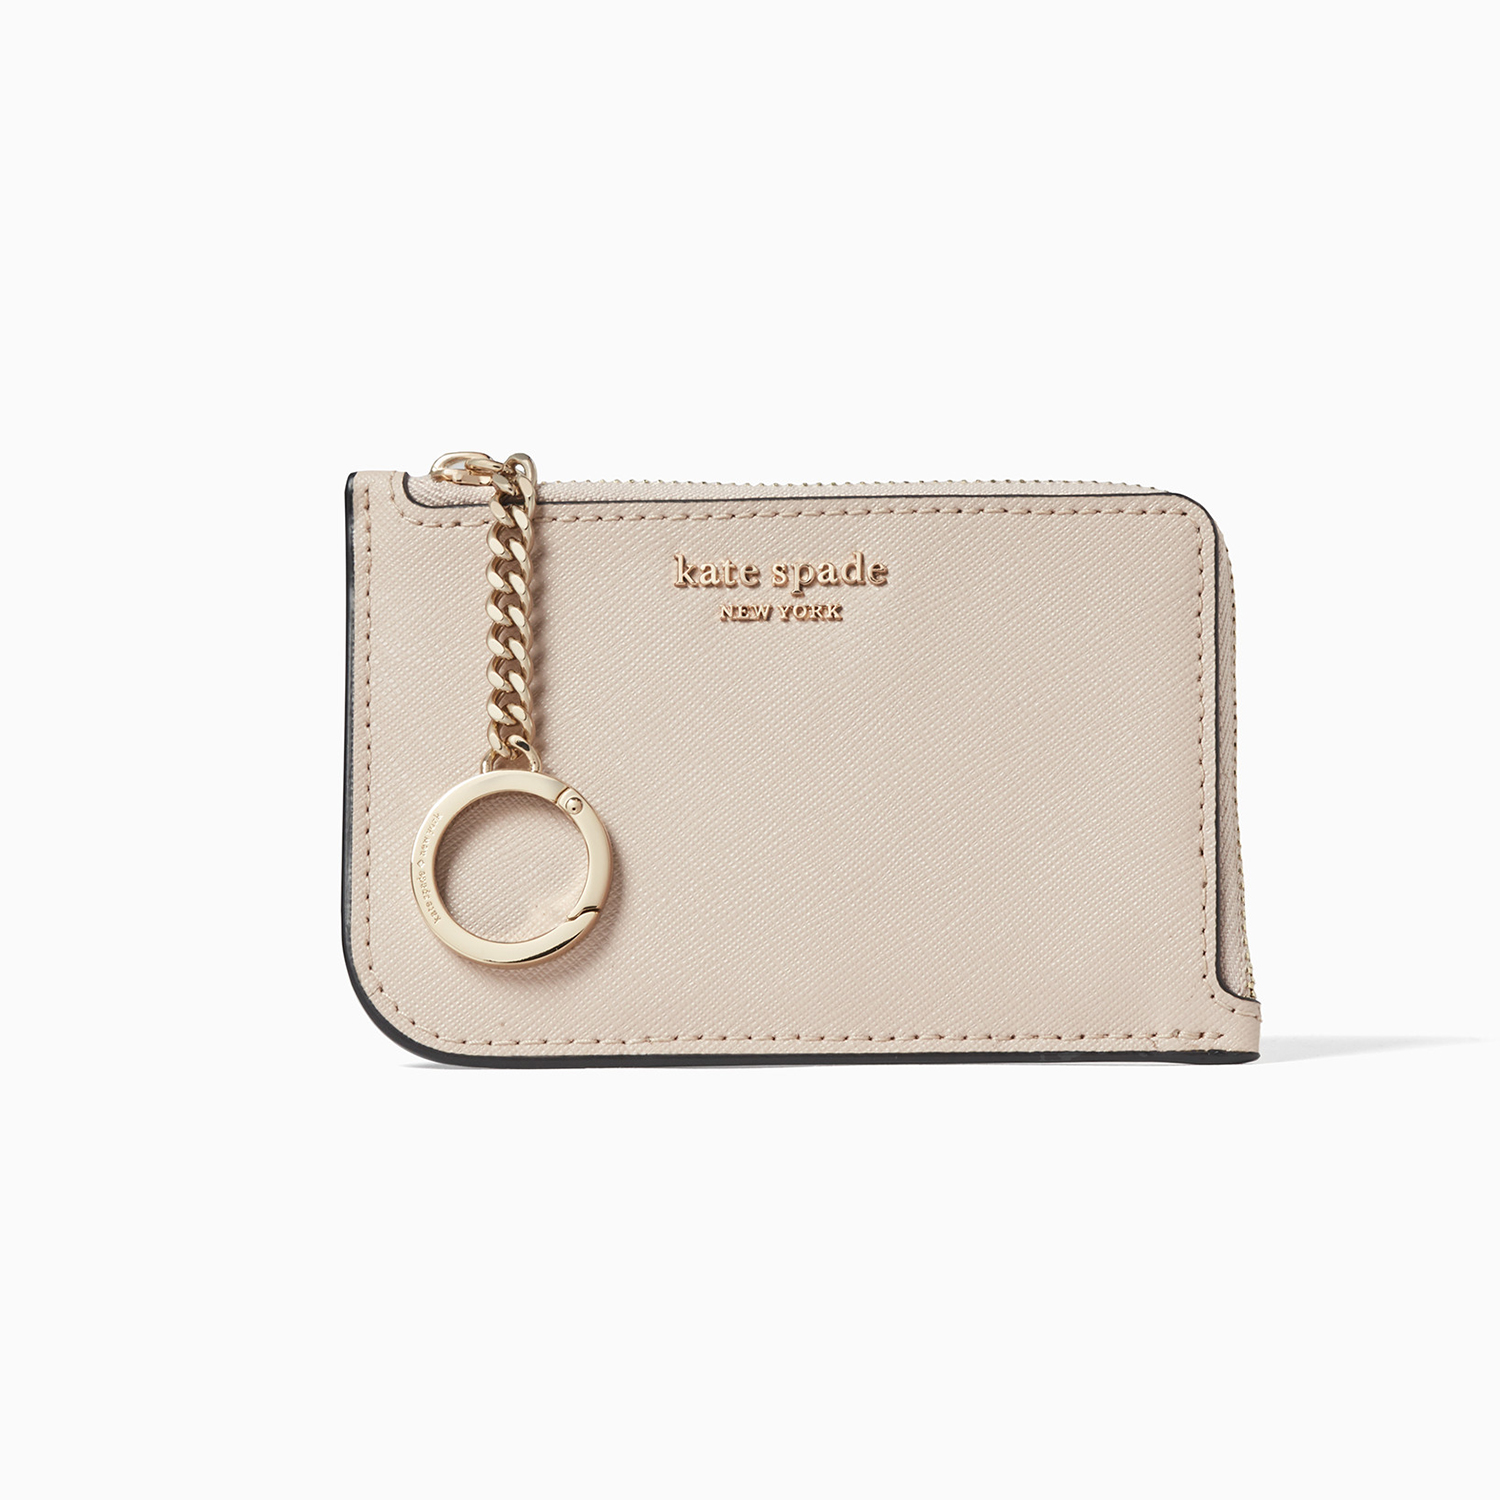 Cameron Medium L-zip Card Holder Bitsy Kate Spade